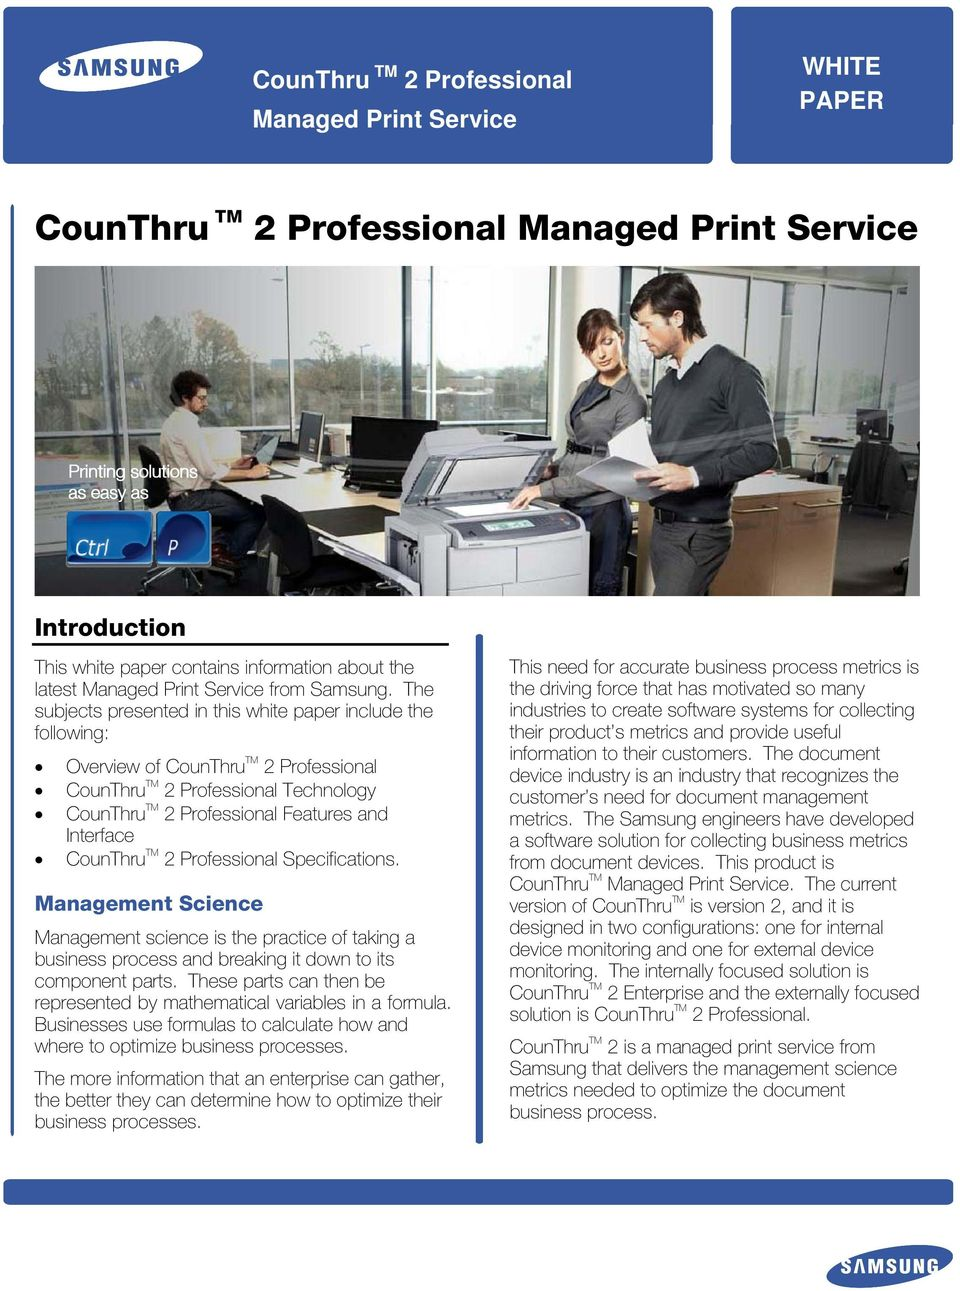 The subjects presented in this white paper include the following: Overview of CounThru TM 2 Professional CounThru TM 2 Professional Technology CounThru TM 2 Professional Features and Interface